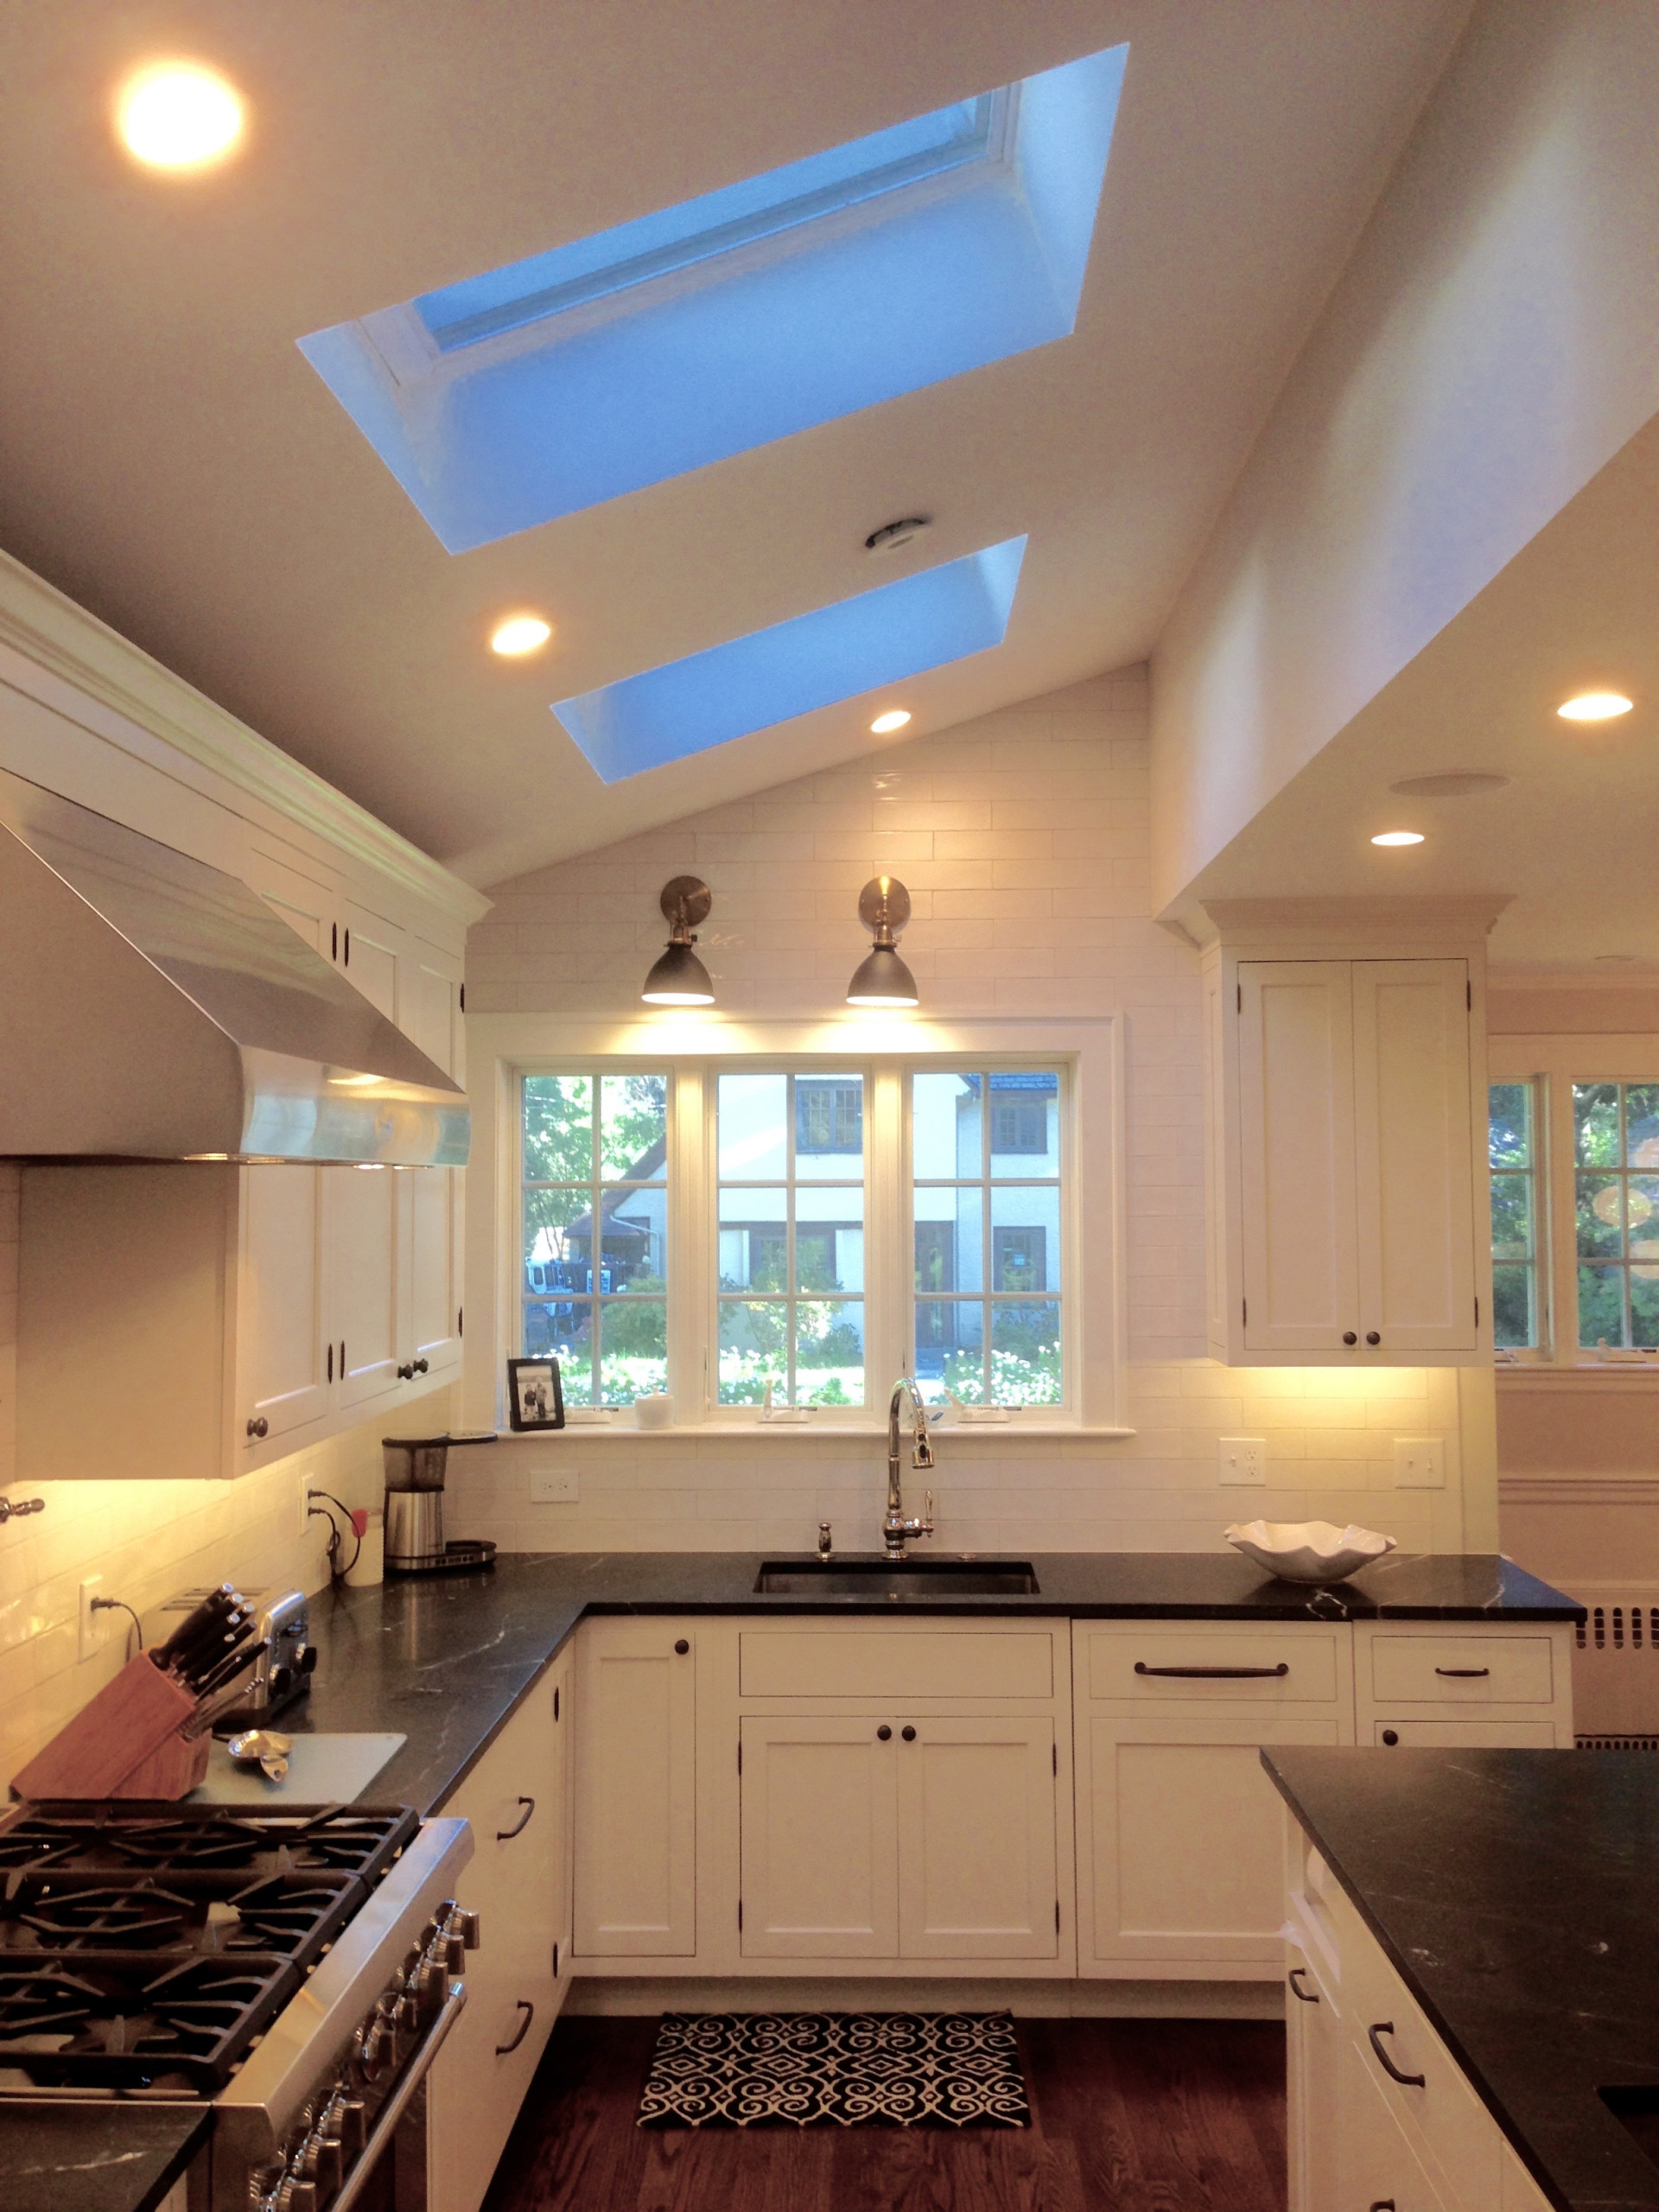 Skylights in Kitchen Addition